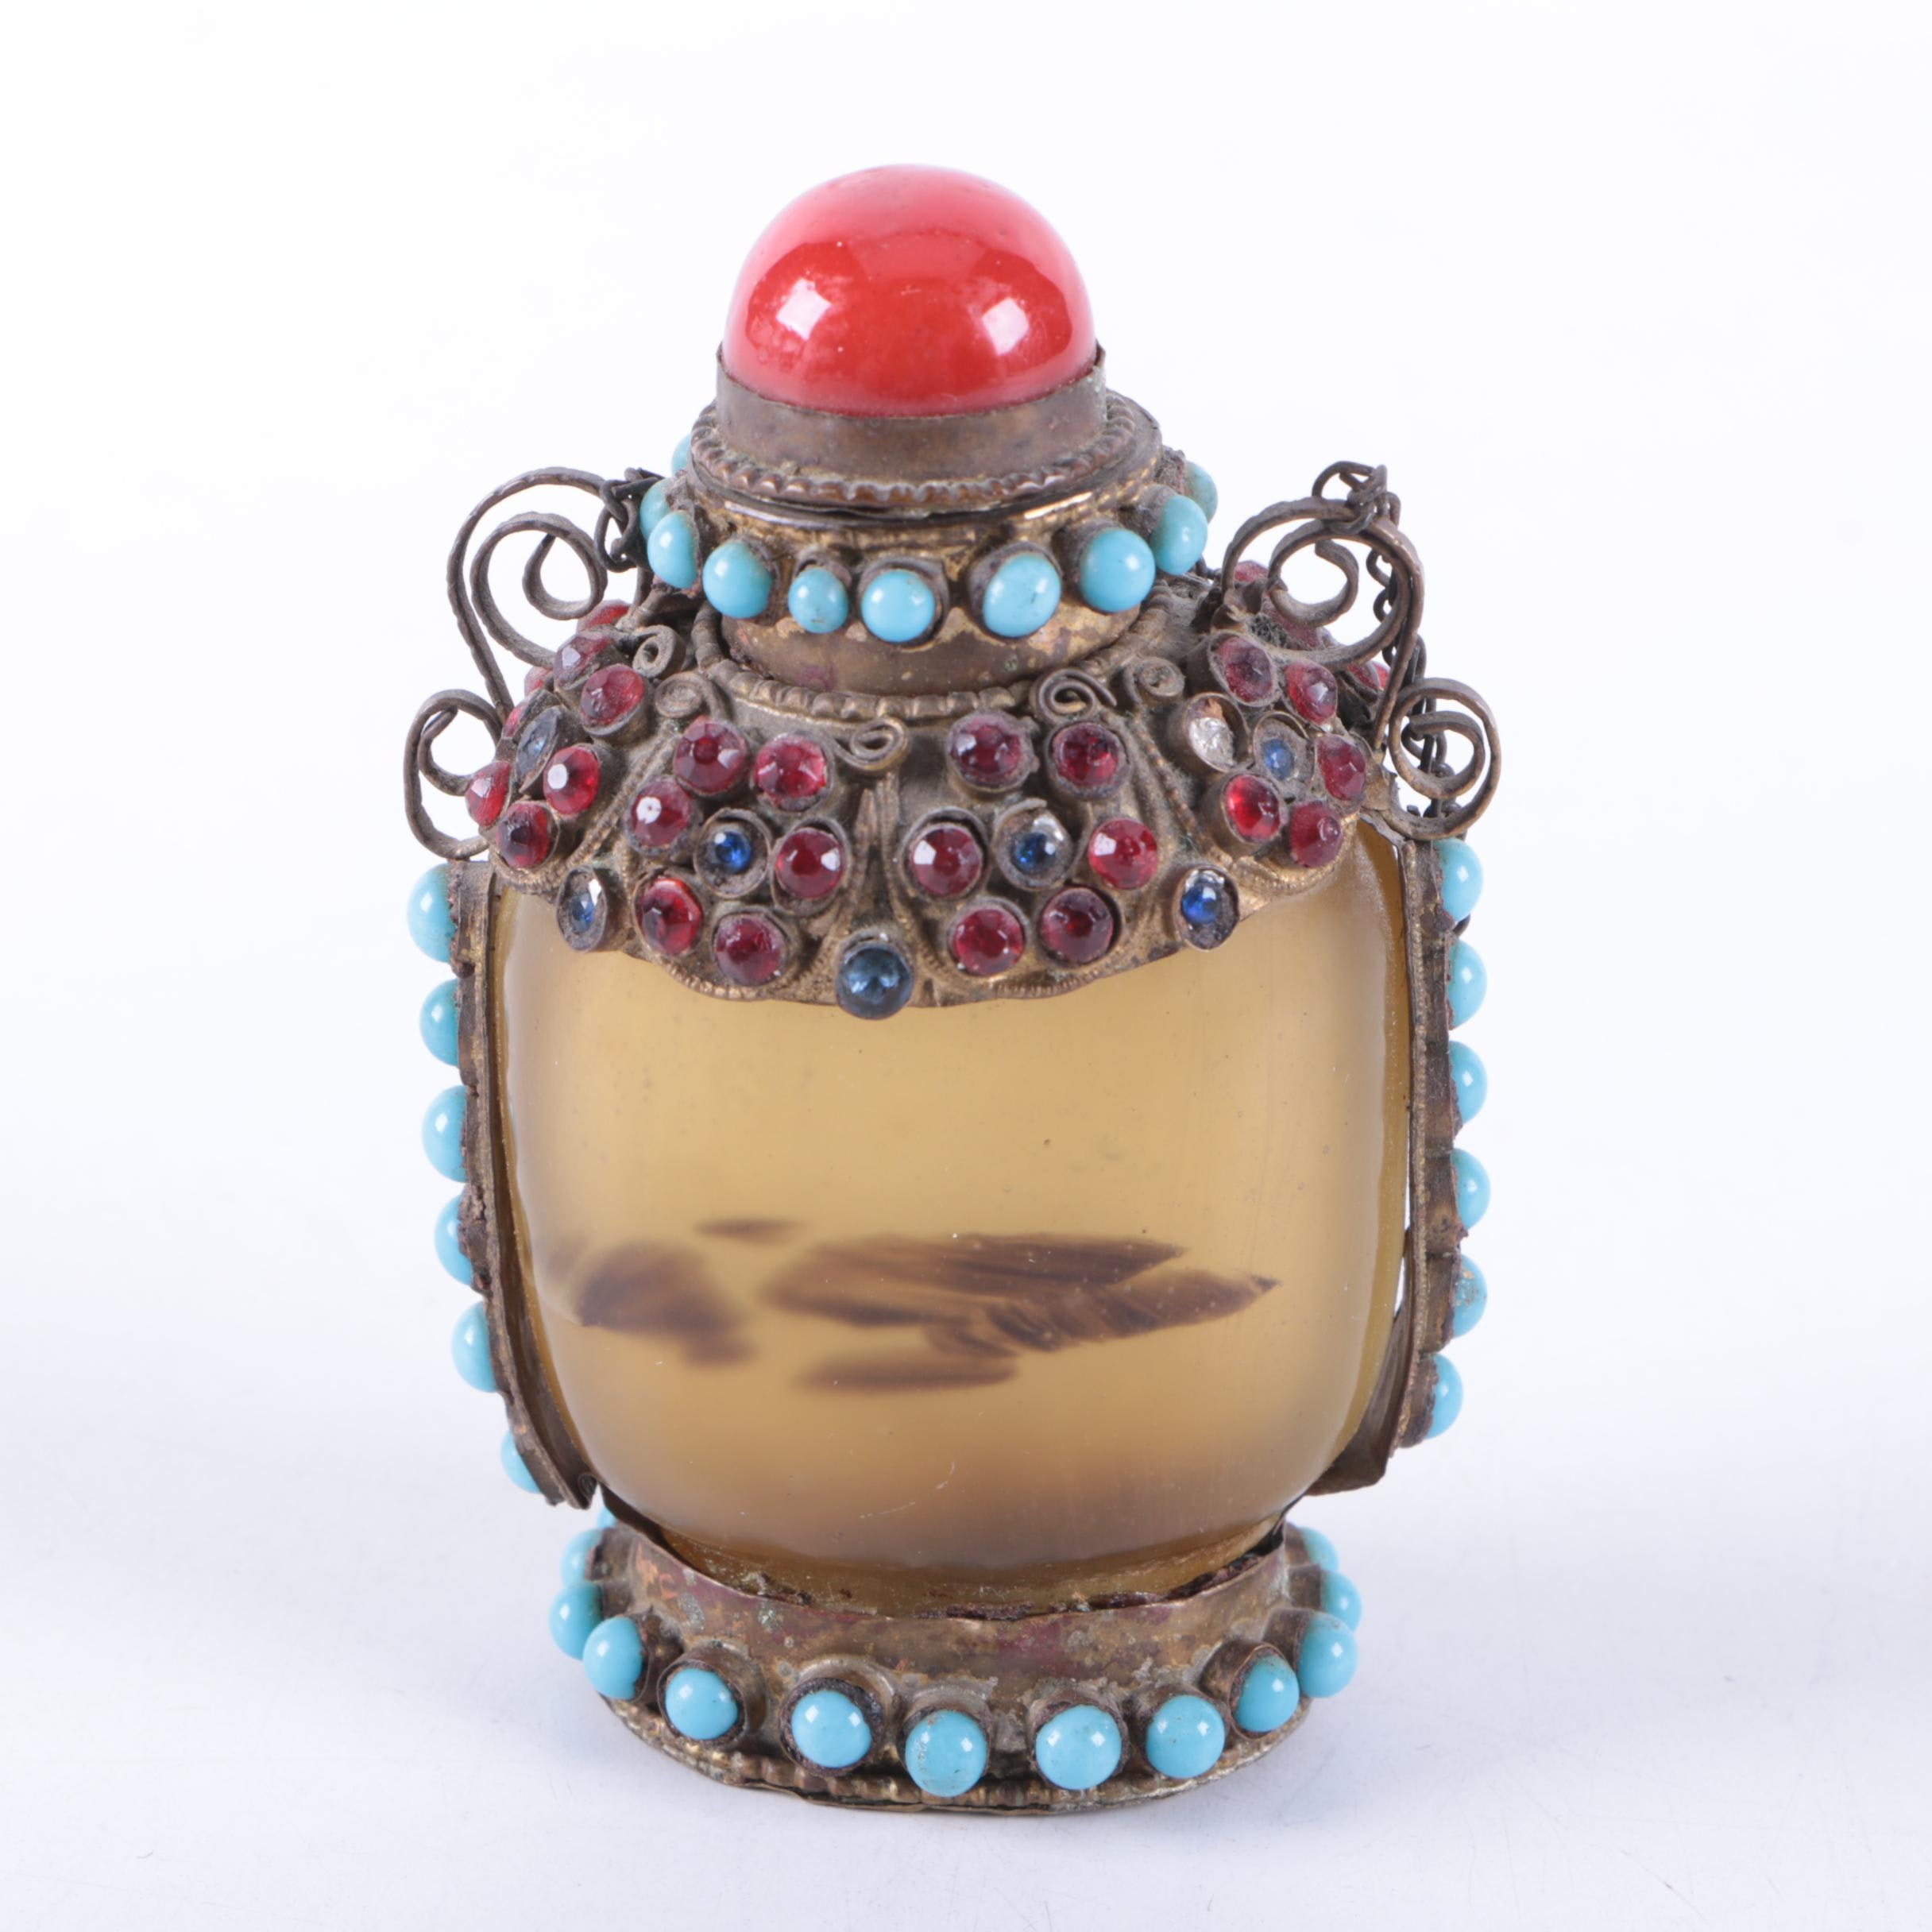 Metal and Glass Embellished Snuff Bottle